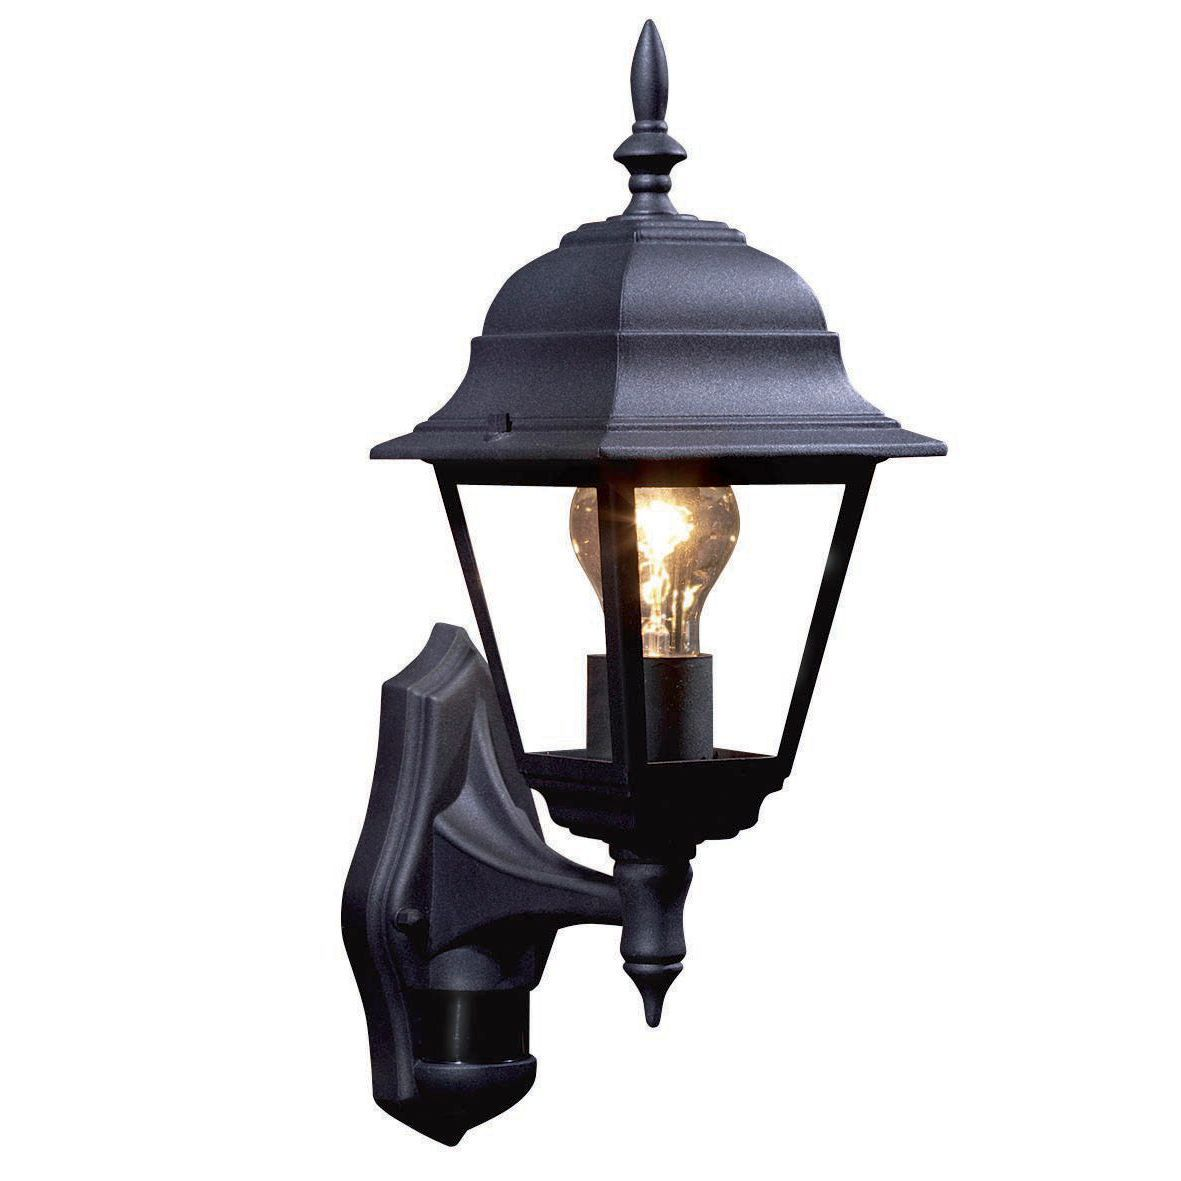 Polperro Black 60w Mains Powered External Pir Lantern